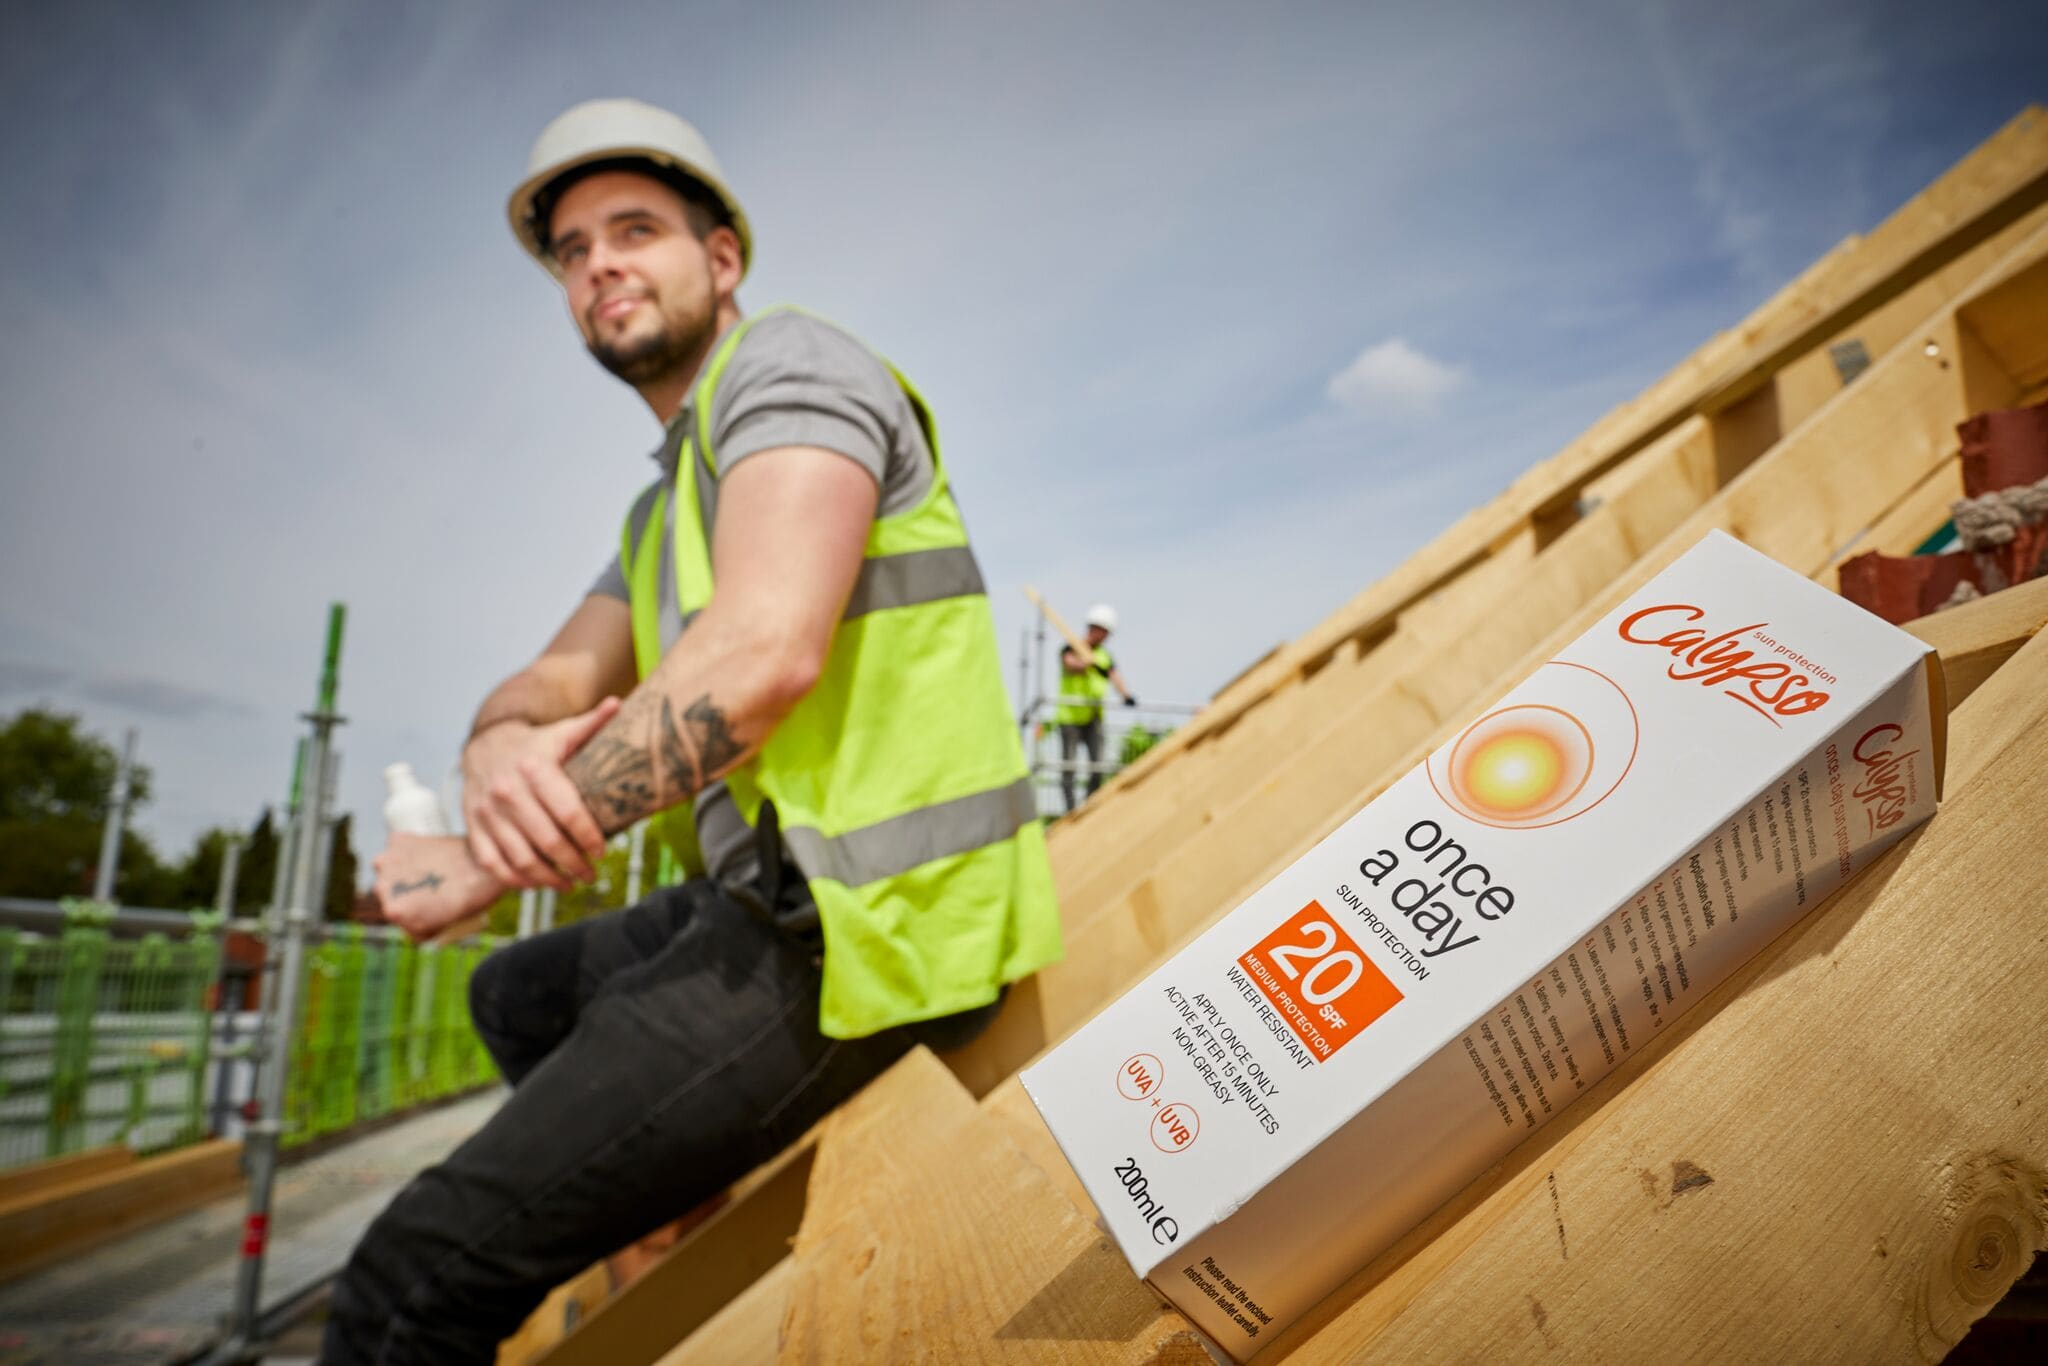 Bracknell Roofing launch campaign to promote sun safety.